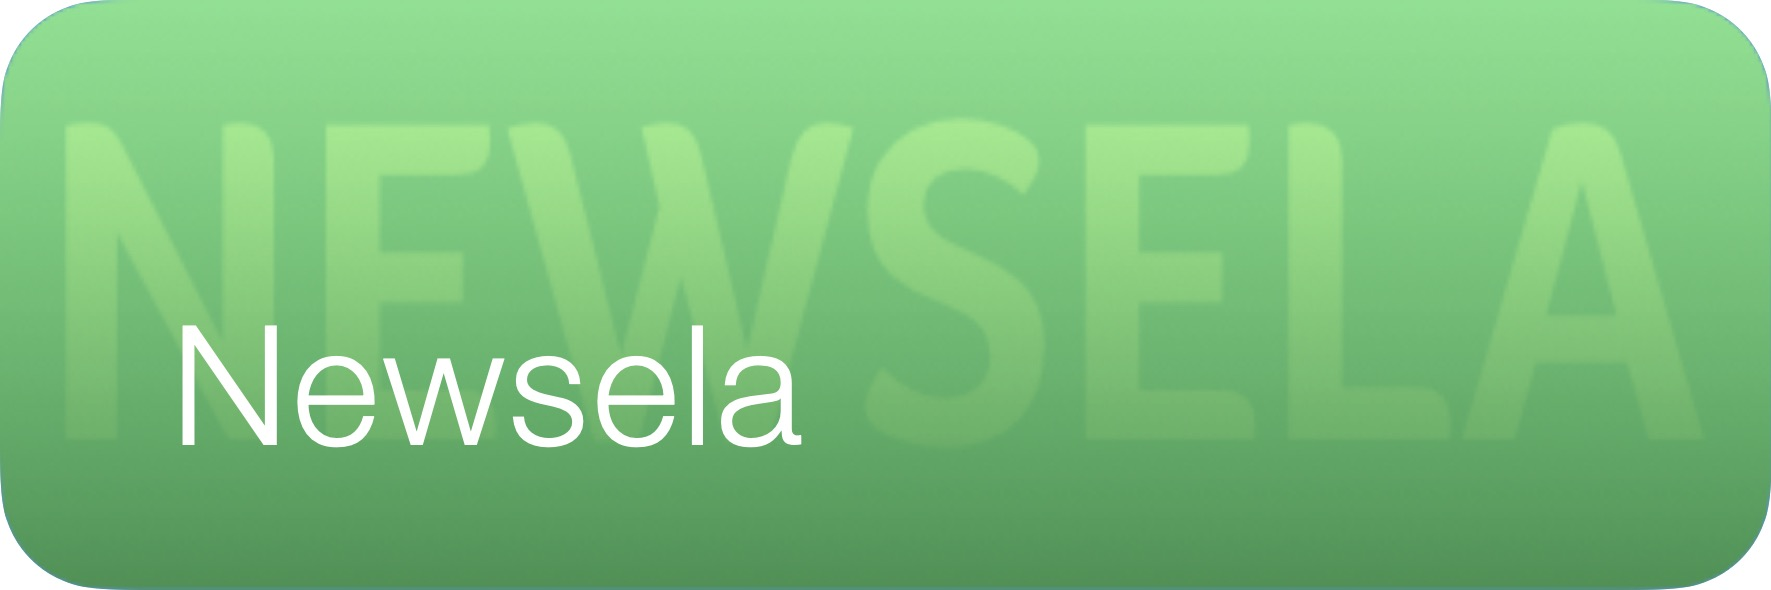 Newsela Button G